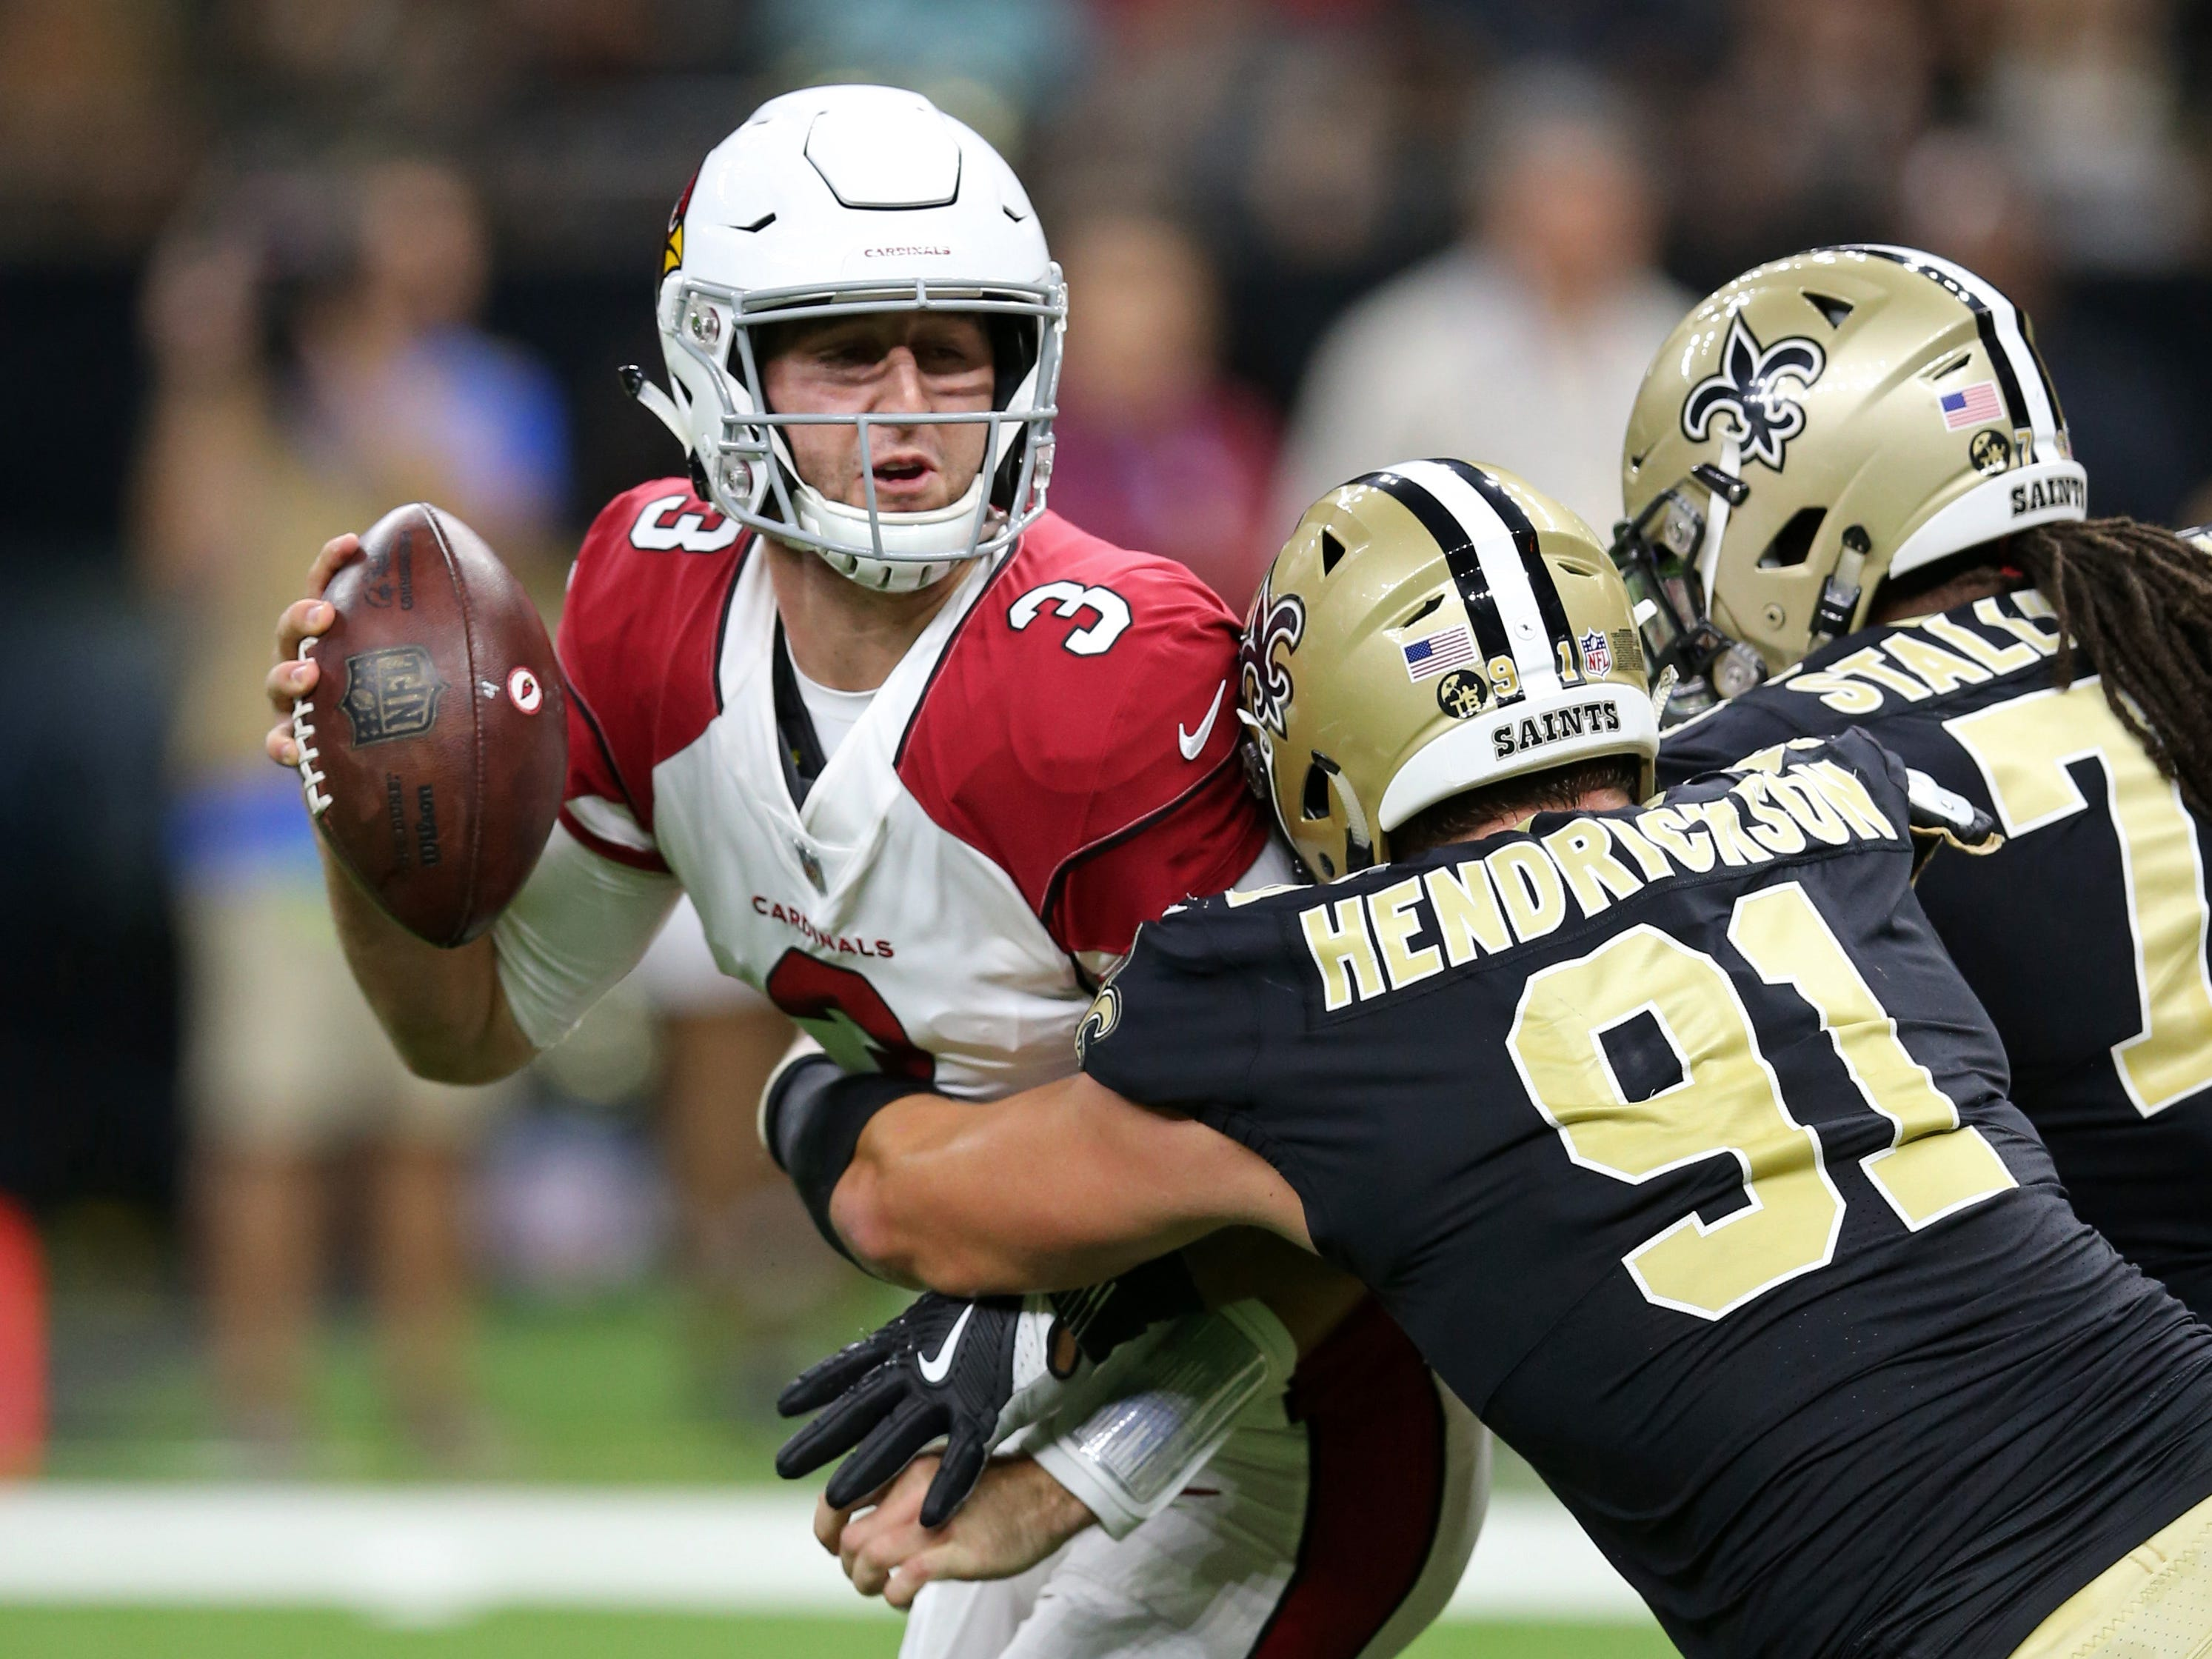 Aug 17, 2018: Arizona Cardinals quarterback Josh Rosen (3) is pressured by New Orleans Saints defensive end Trey Hendrickson (91) and defensive tackle Taylor Stallworth (76) during the second quarter at the Mercedes-Benz Superdome.